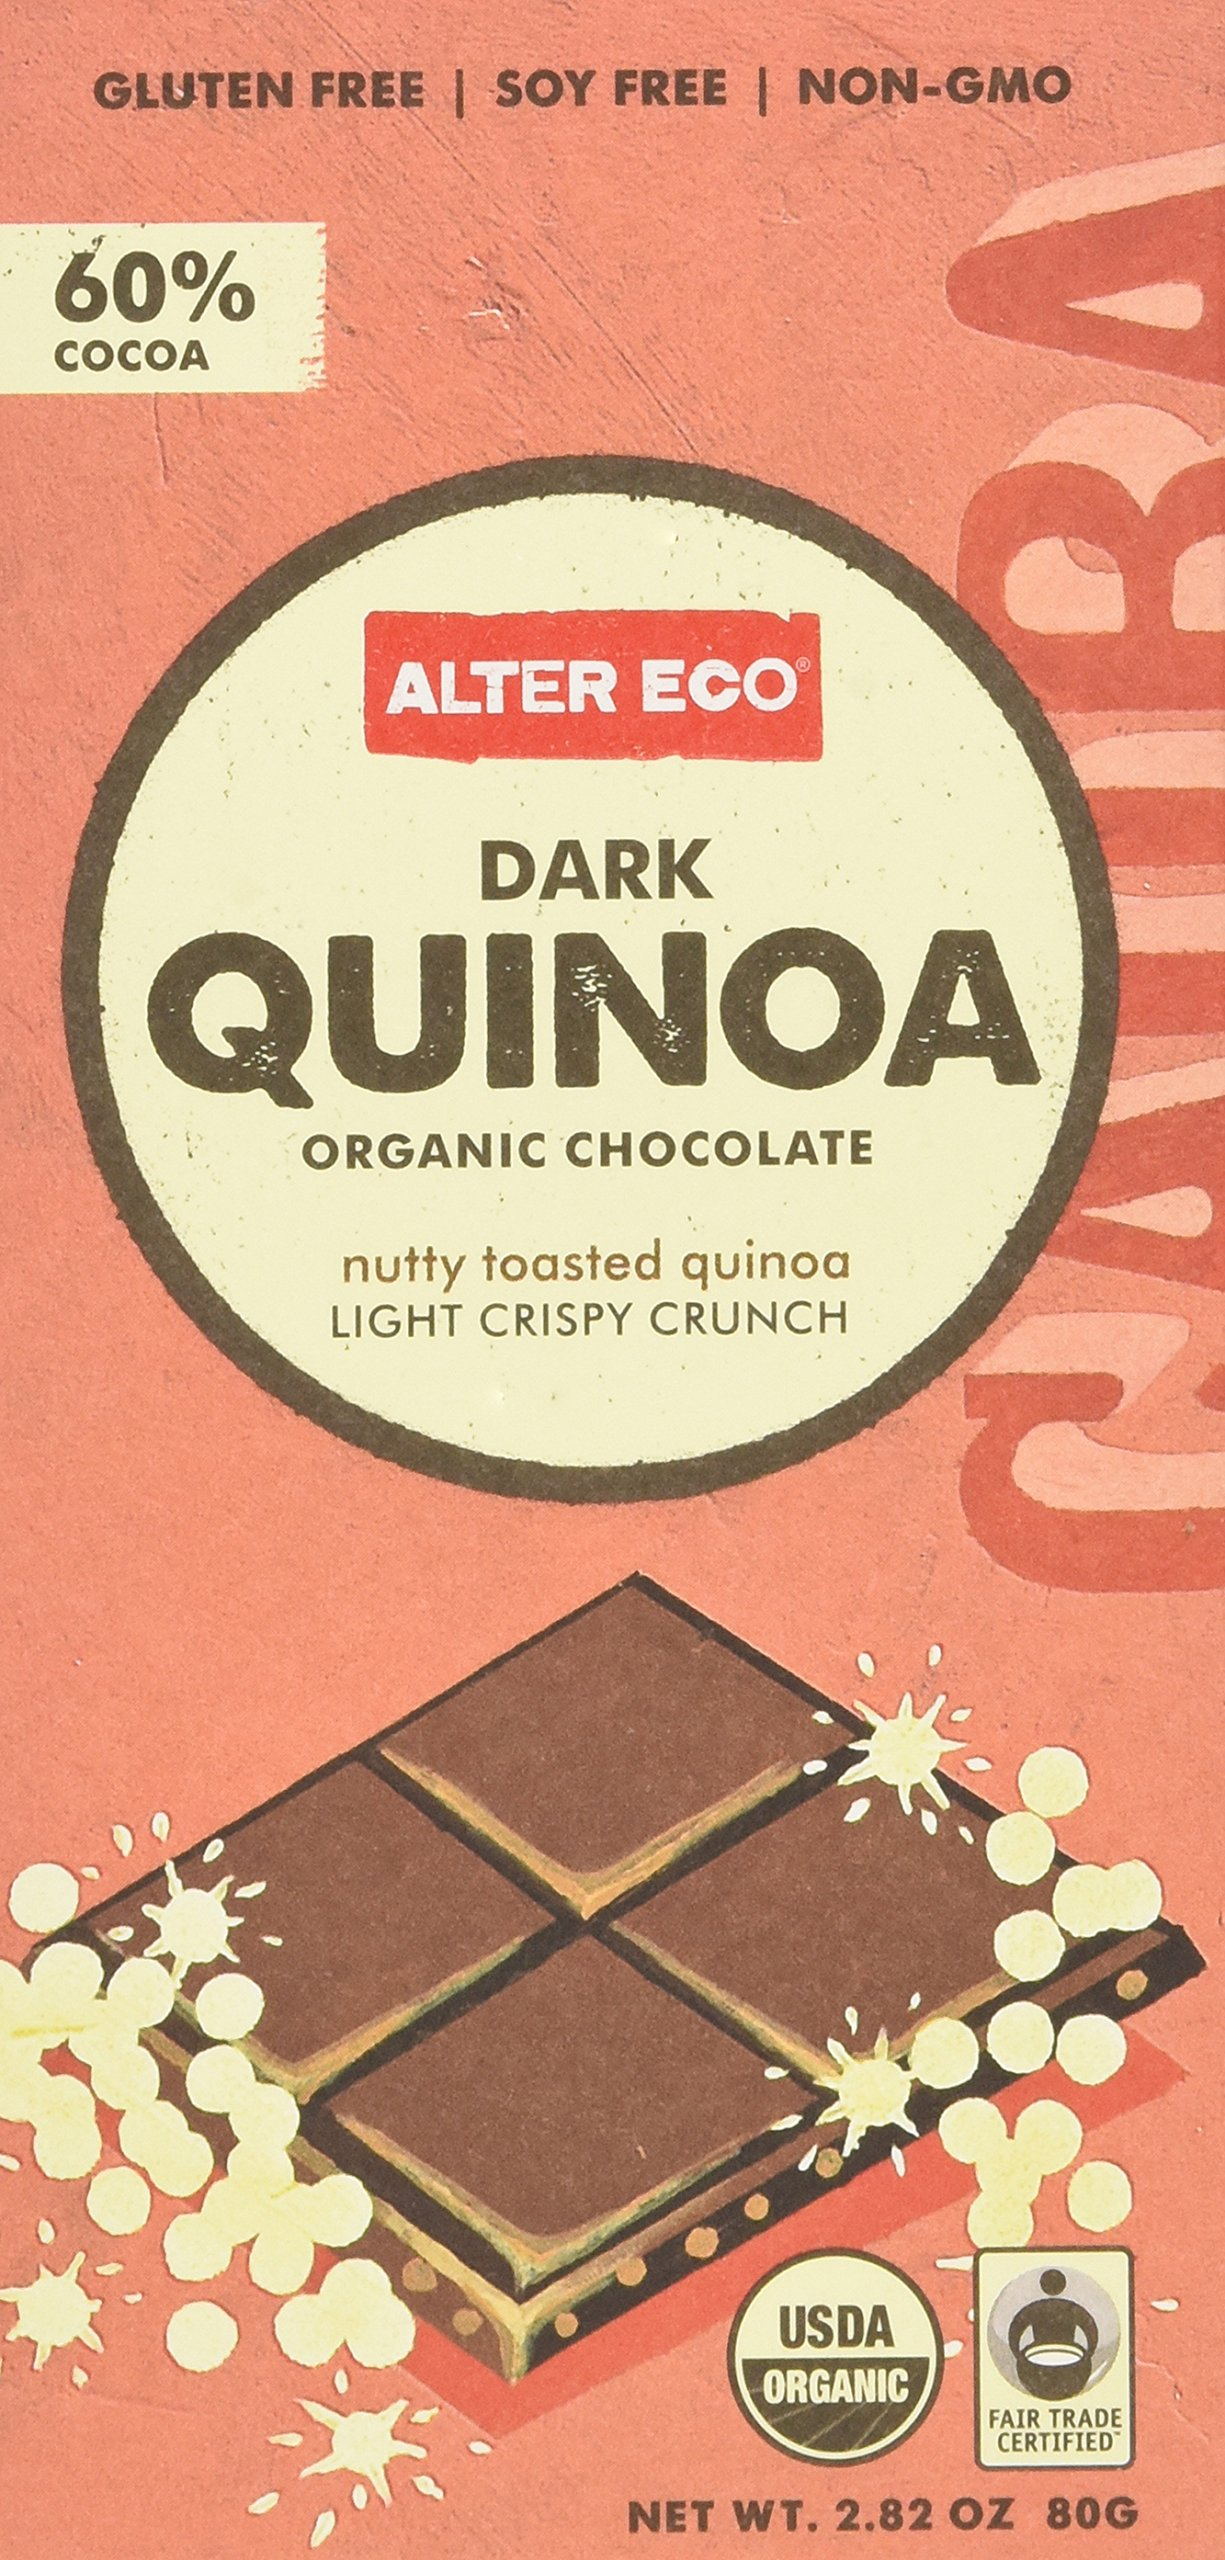 Alter Eco Organic Dark Quinoa Chocolate (pack of 12)